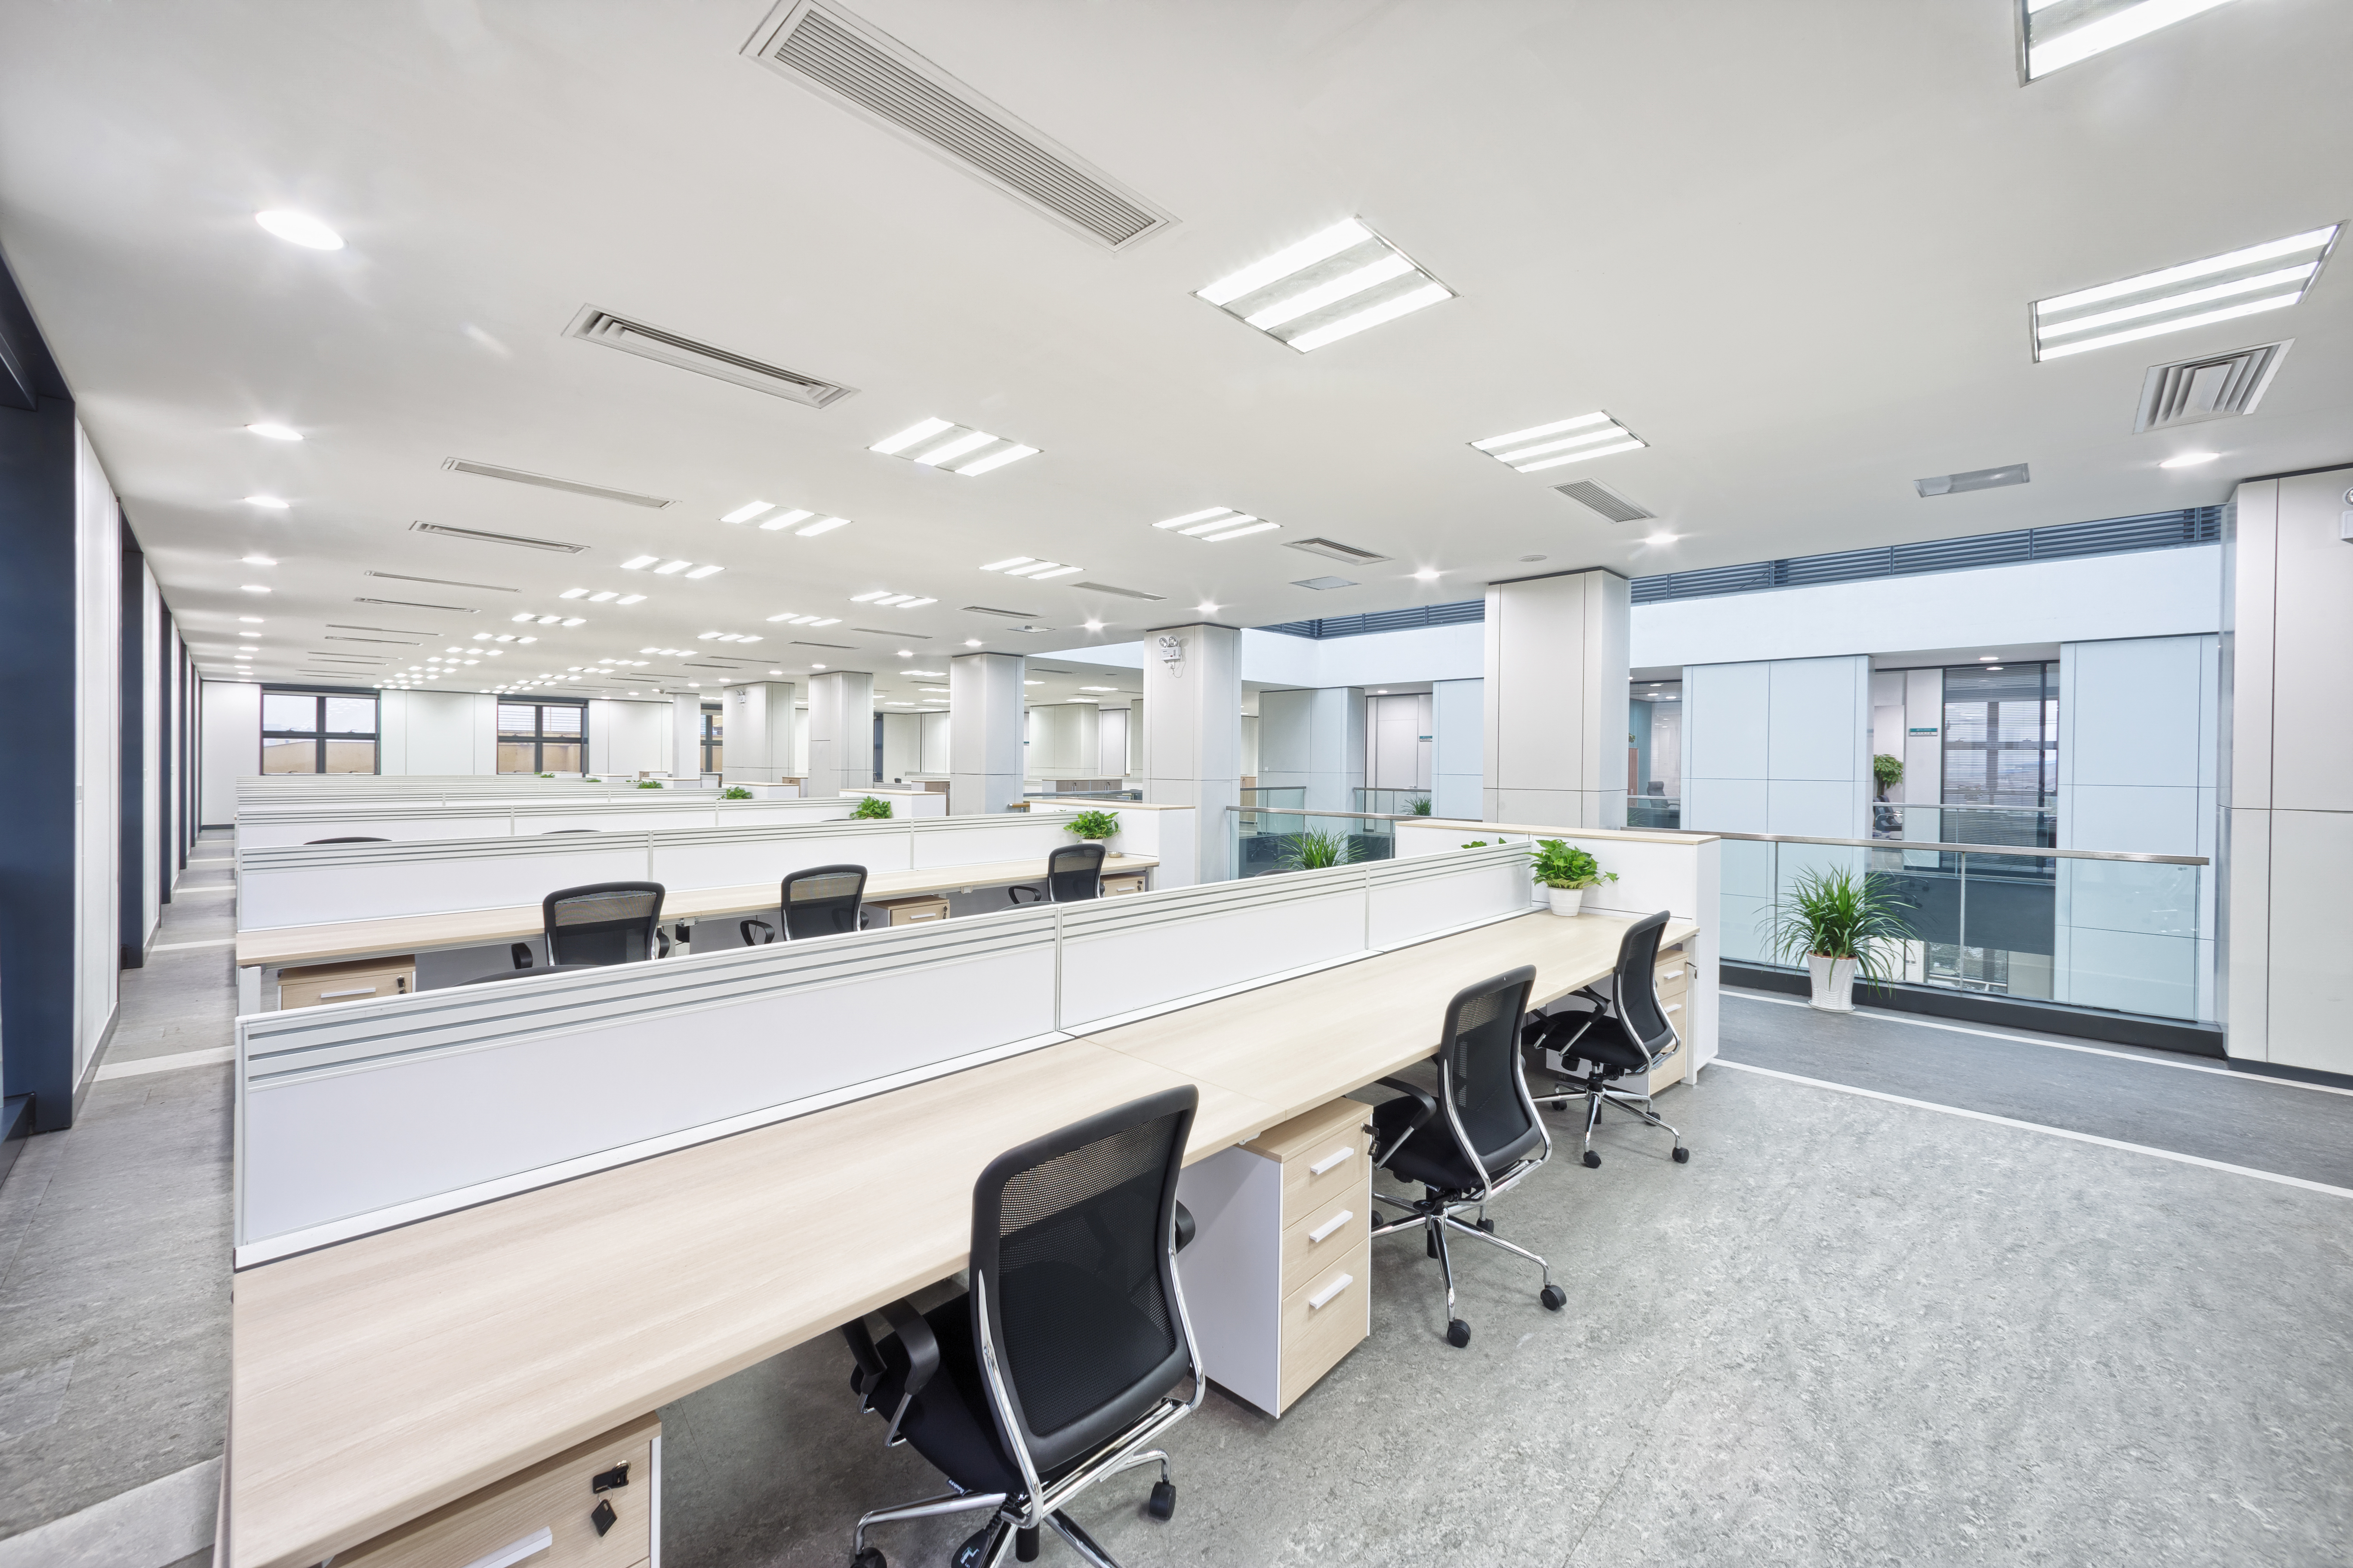 Shifting trends might influence future office developments